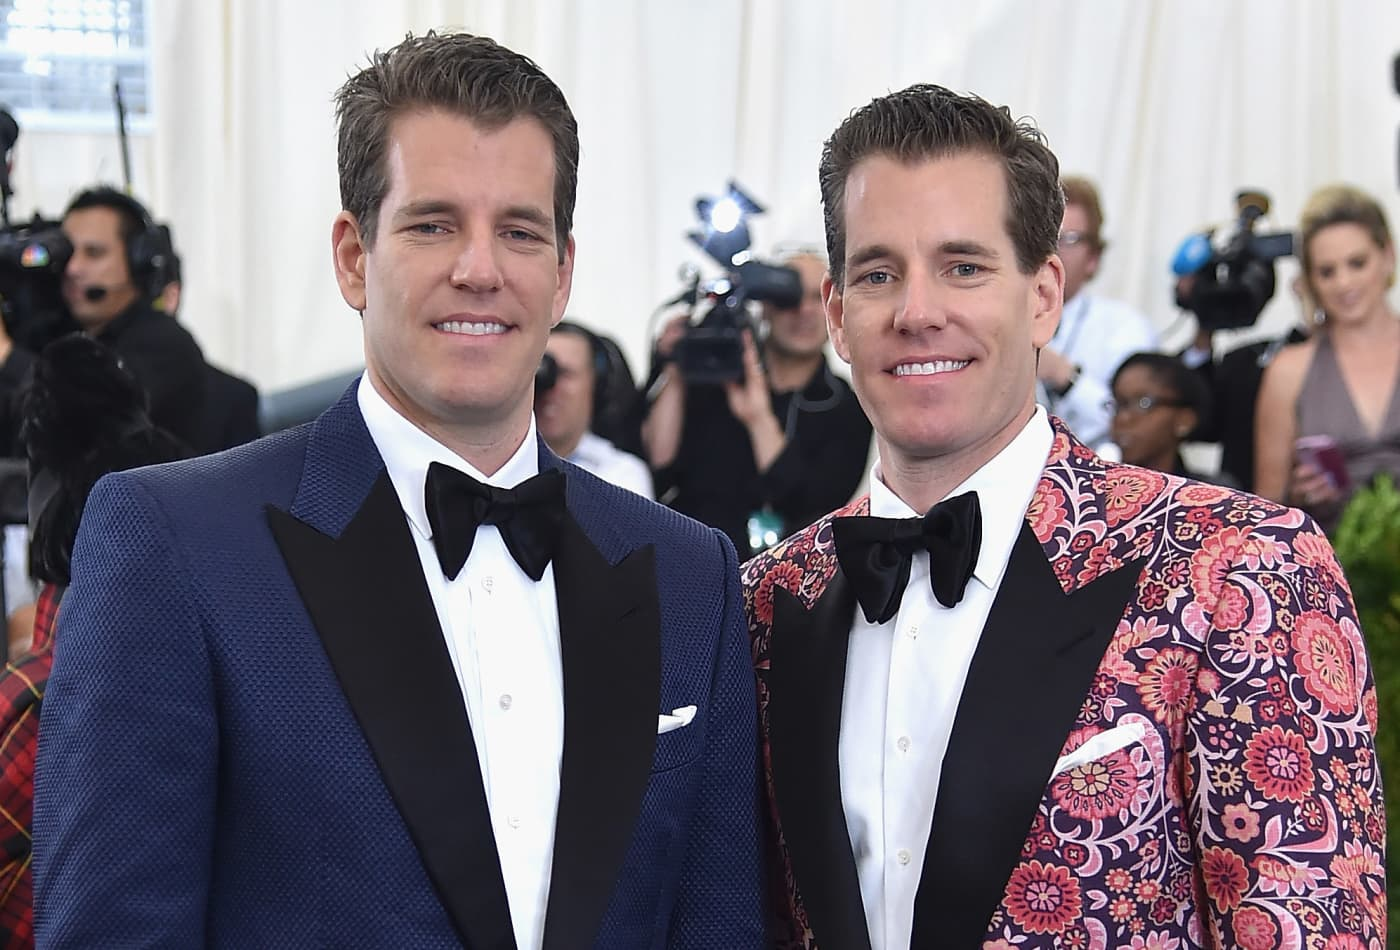 Winklevoss twins may have become first bitcoin billionaires